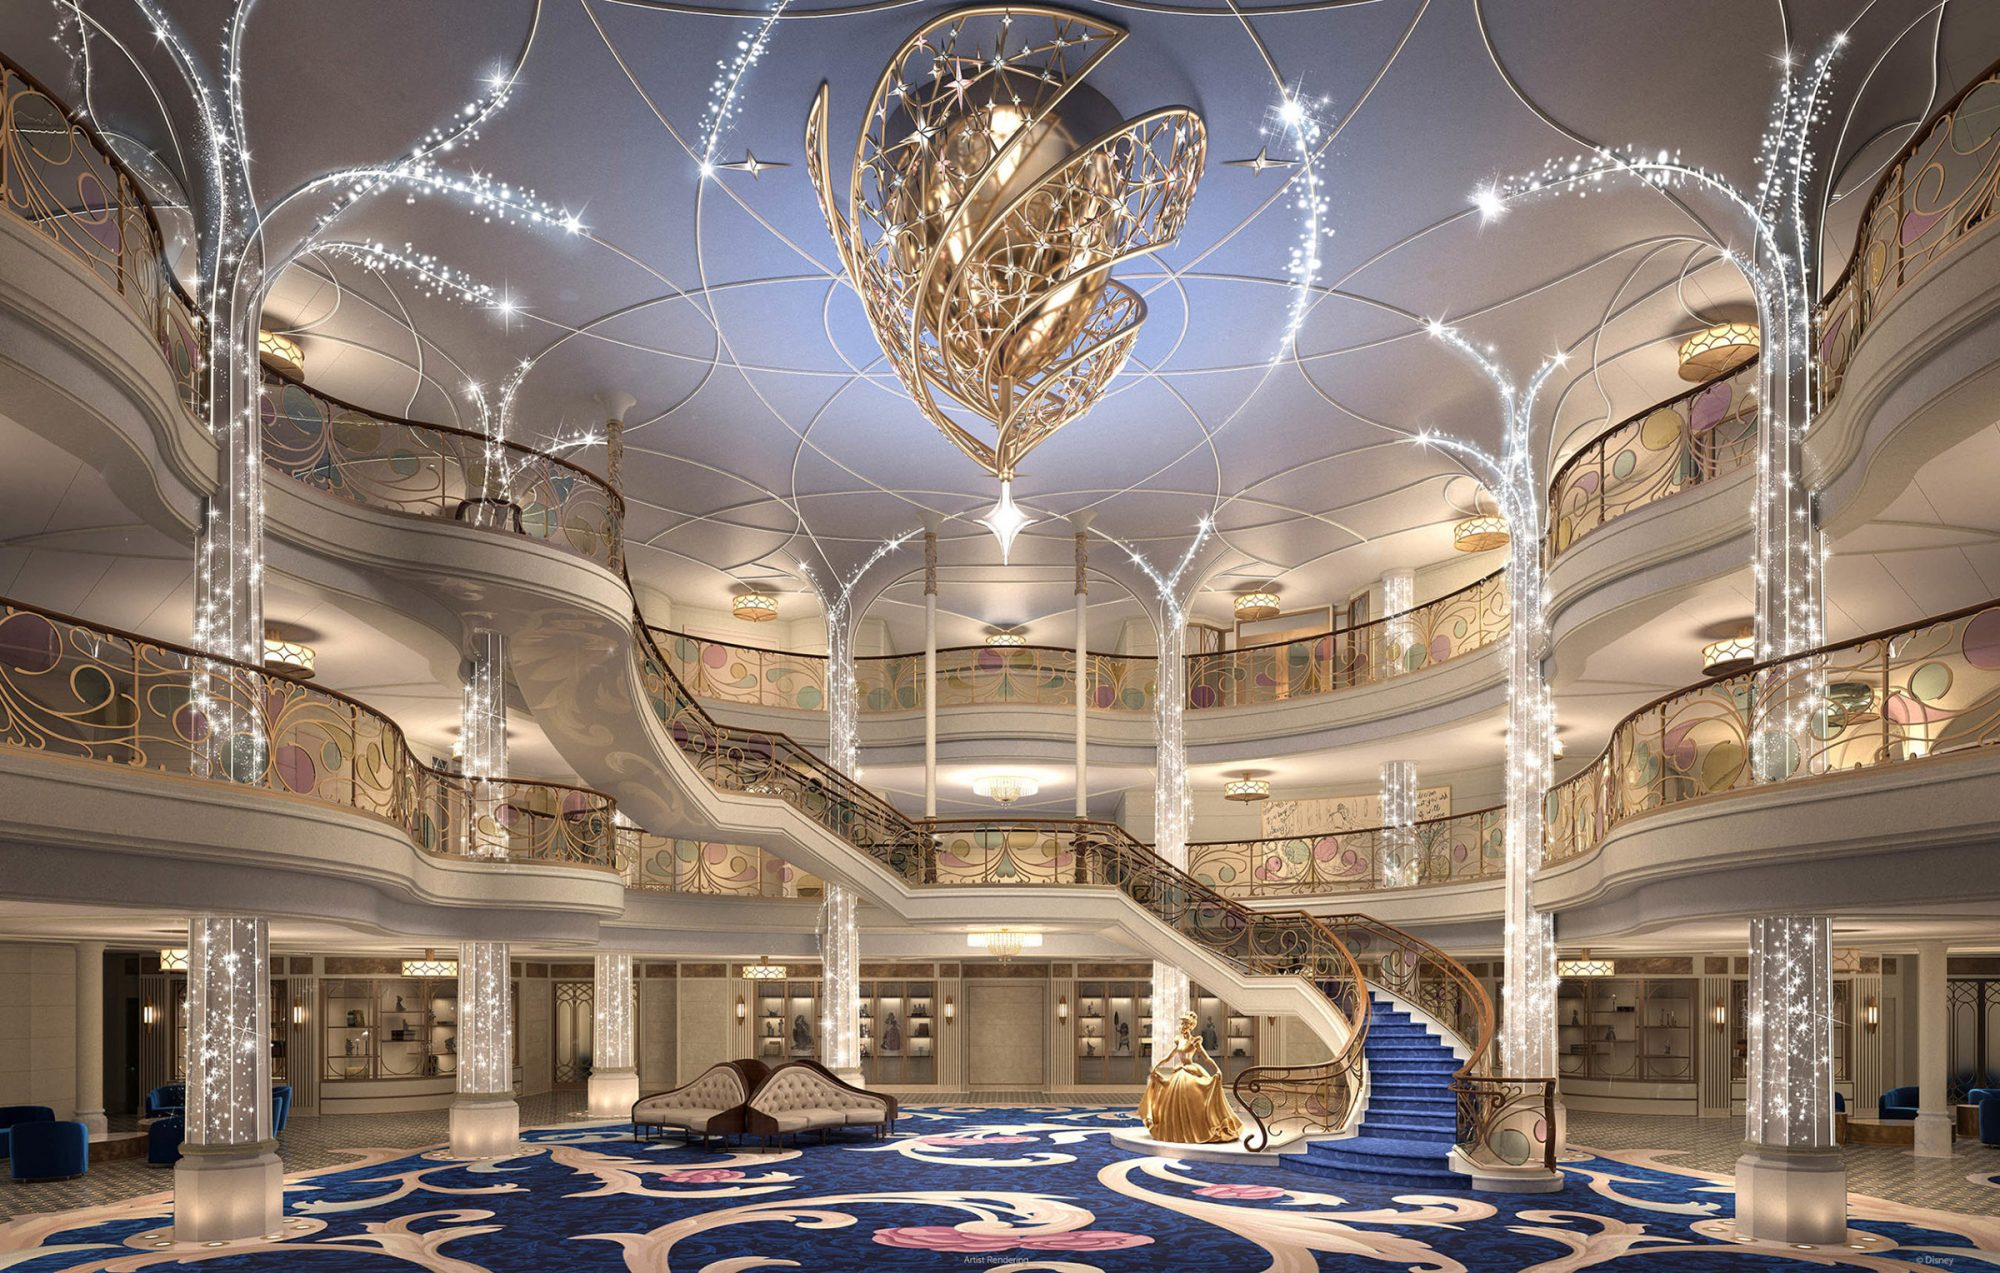 Disney Cruise Line's Newest Ship Will Be a Cinderella-Inspired 'Castle on the Seas'